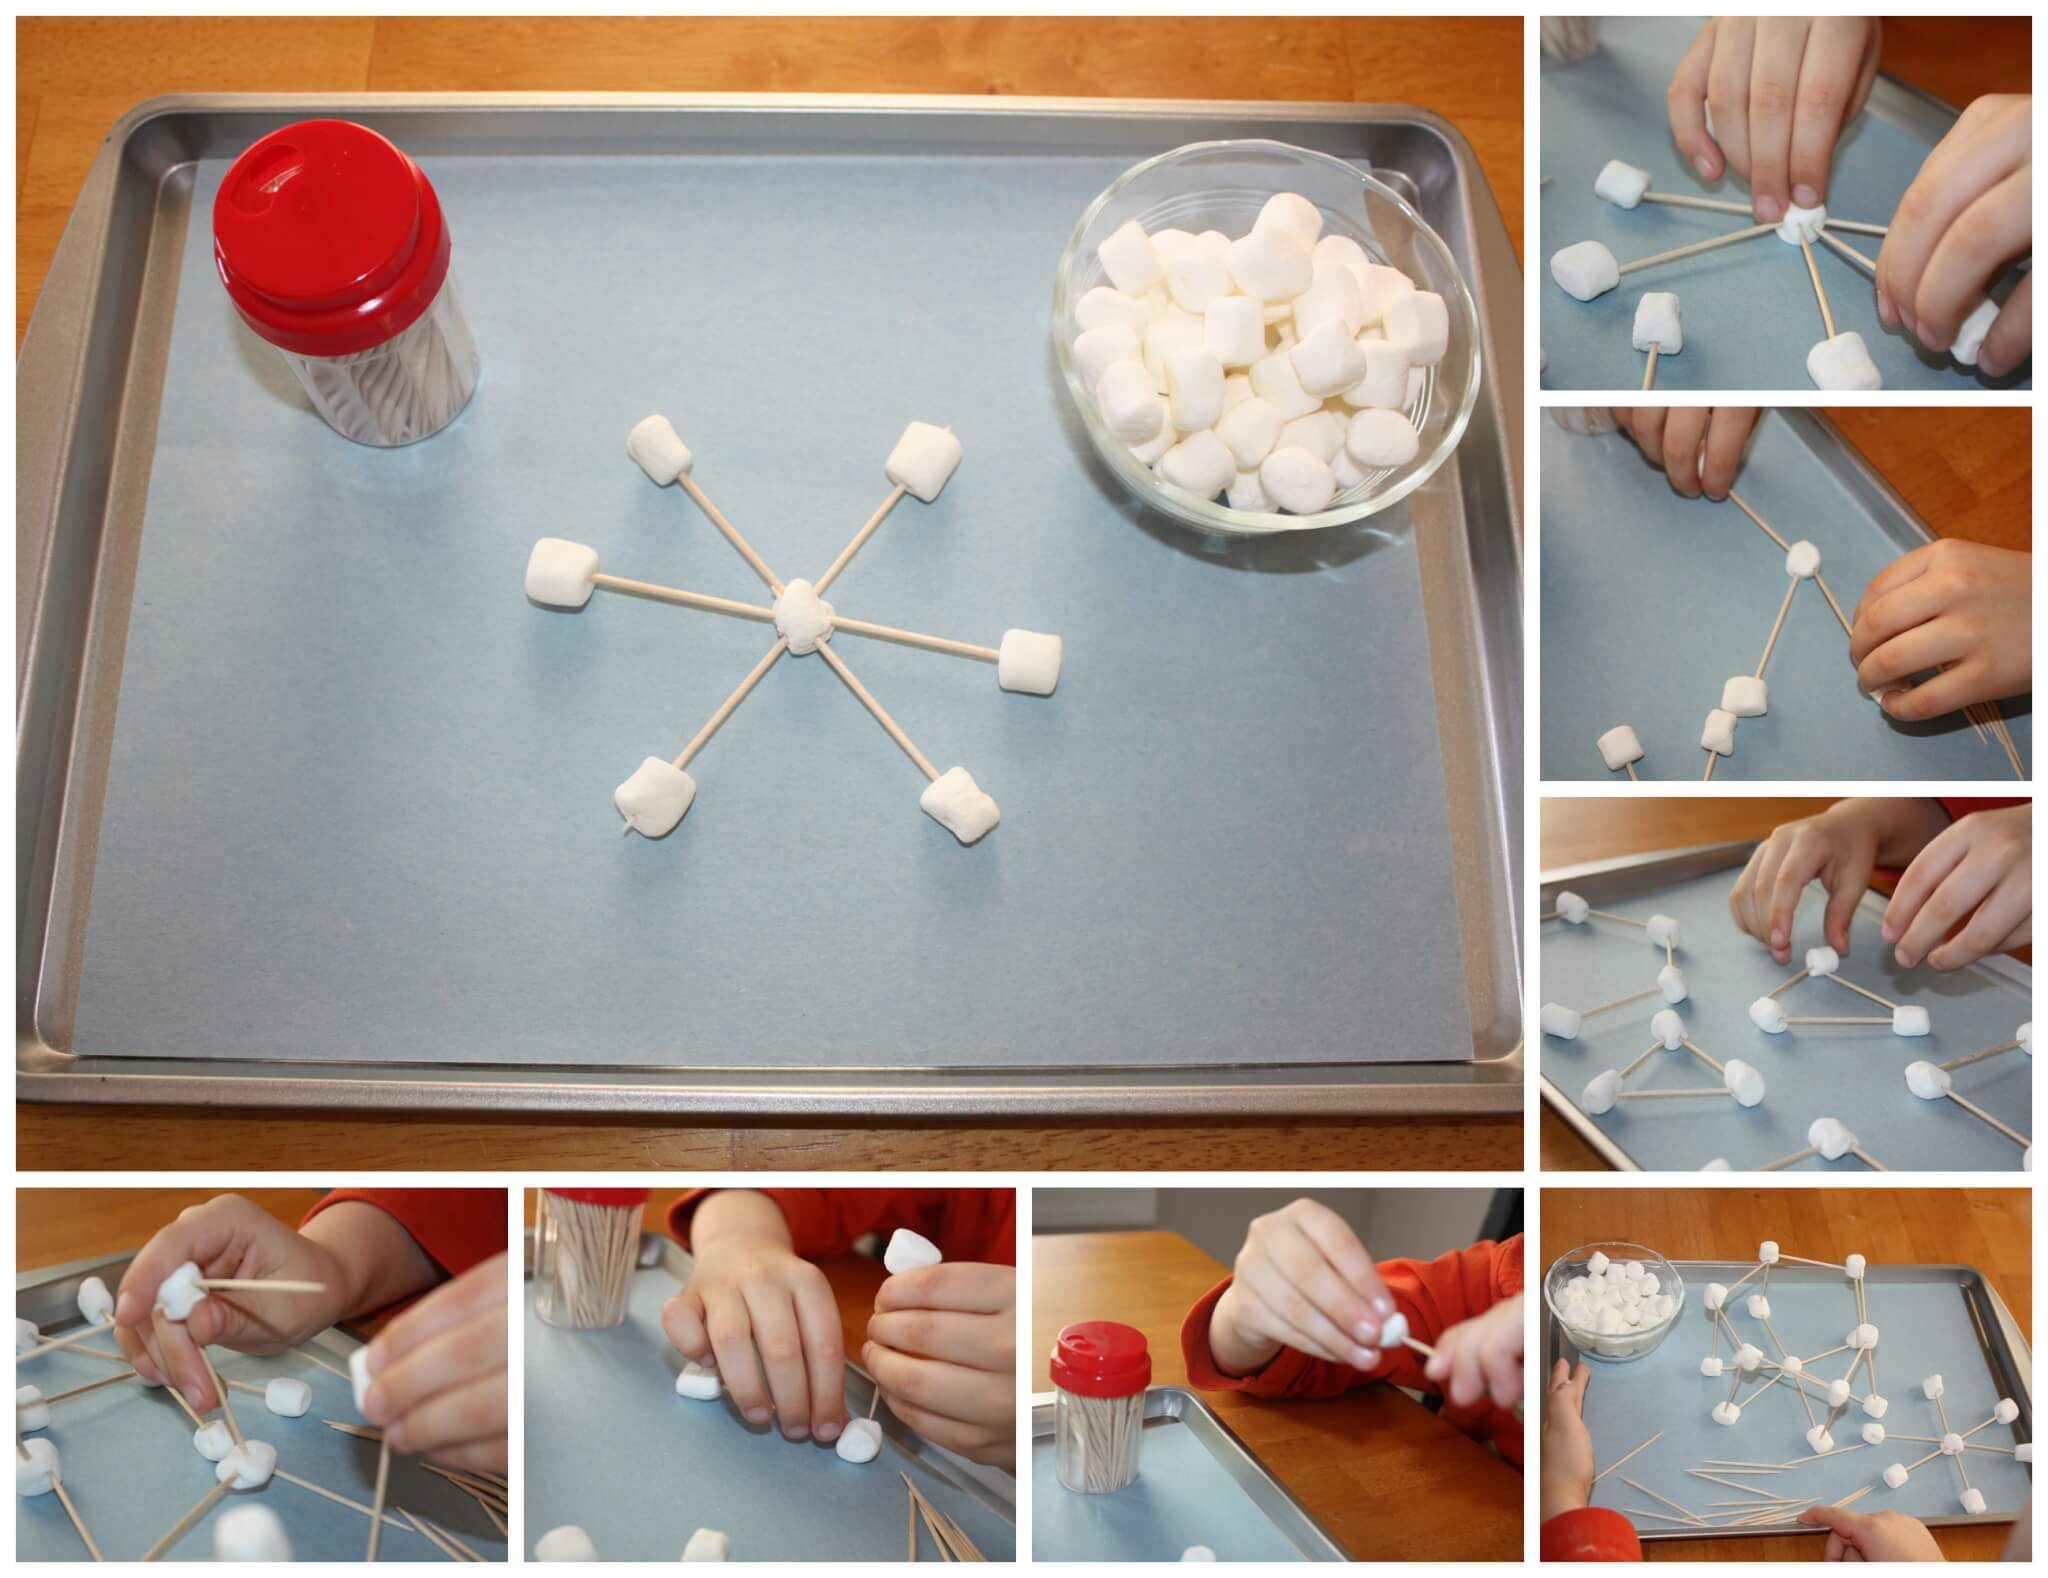 Fine Motor Activities With Marshmallows And Toothpicks